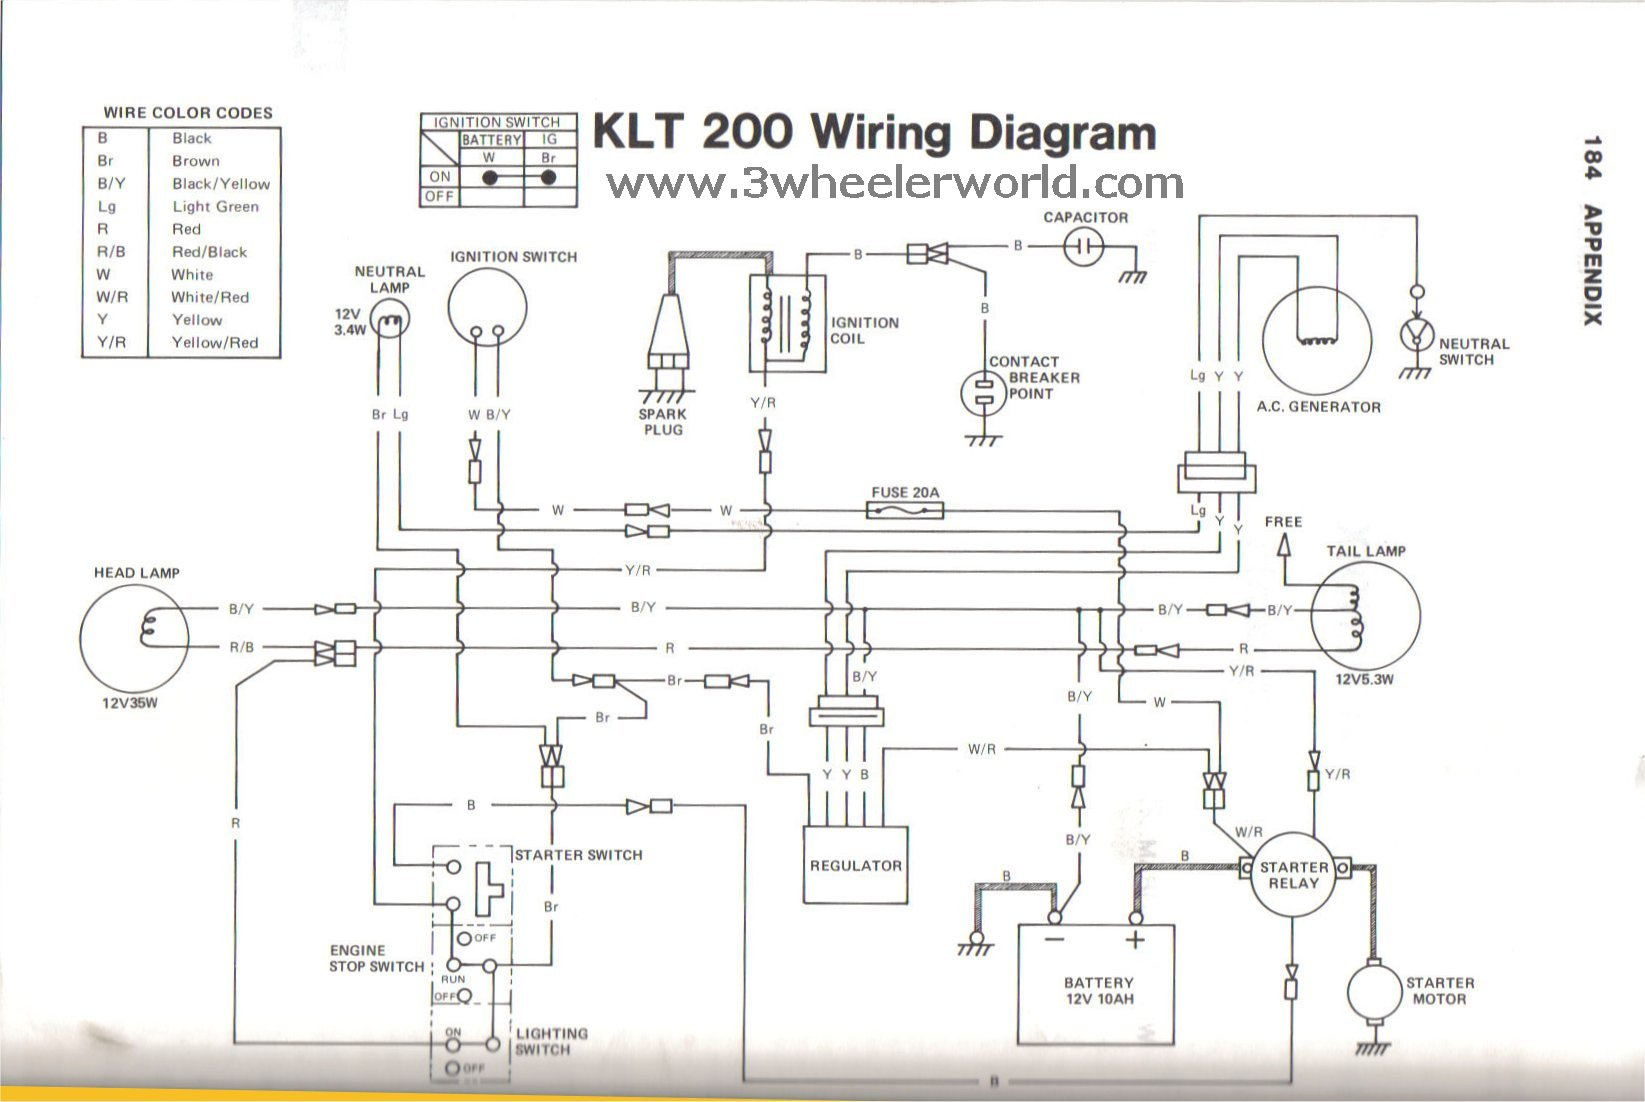 KLT200WiringDiagram1 3 wheeler world tech help kawasaki wiring diagrams kawasaki wiring diagrams at gsmportal.co